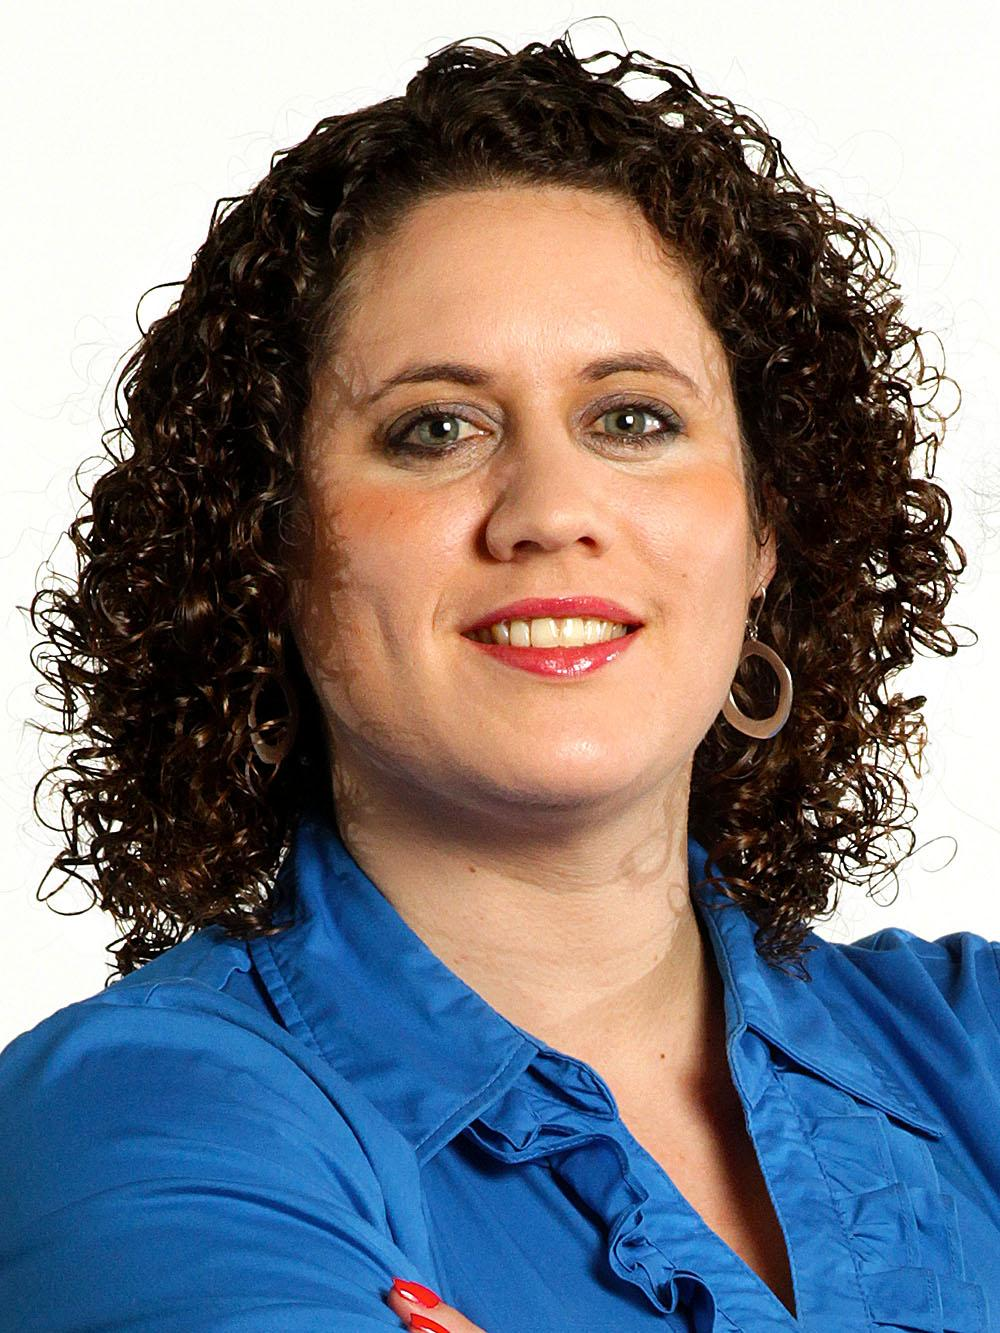 Green if you're single, pink if you're taken: Seattle startup's creative approach to marketing at SXSW - Puget Sound Business Journal